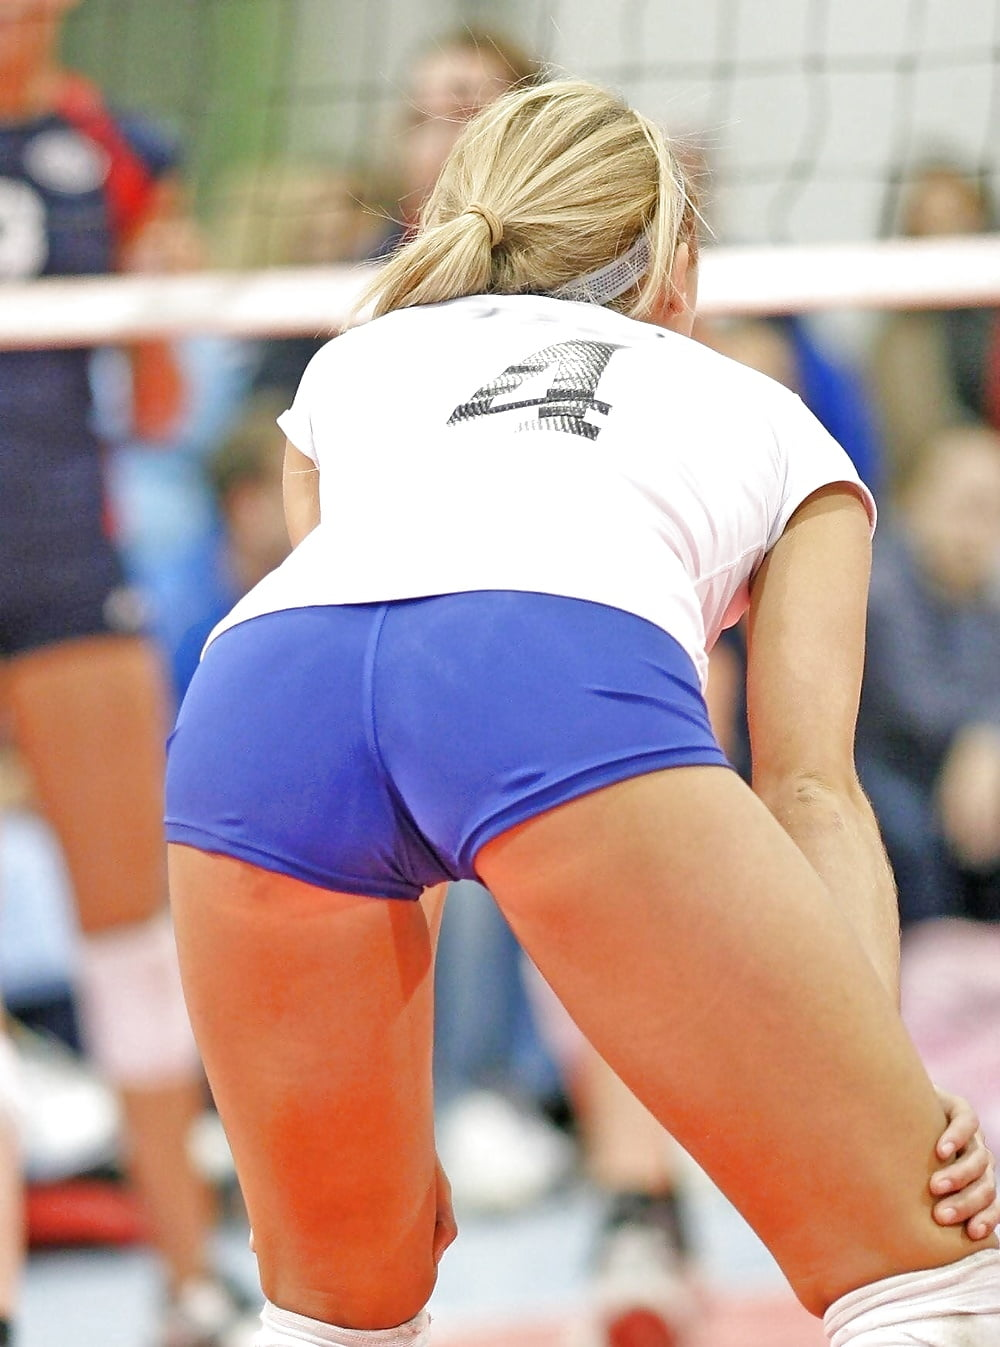 womens-volleyball-ass-pics-and-girl-porn